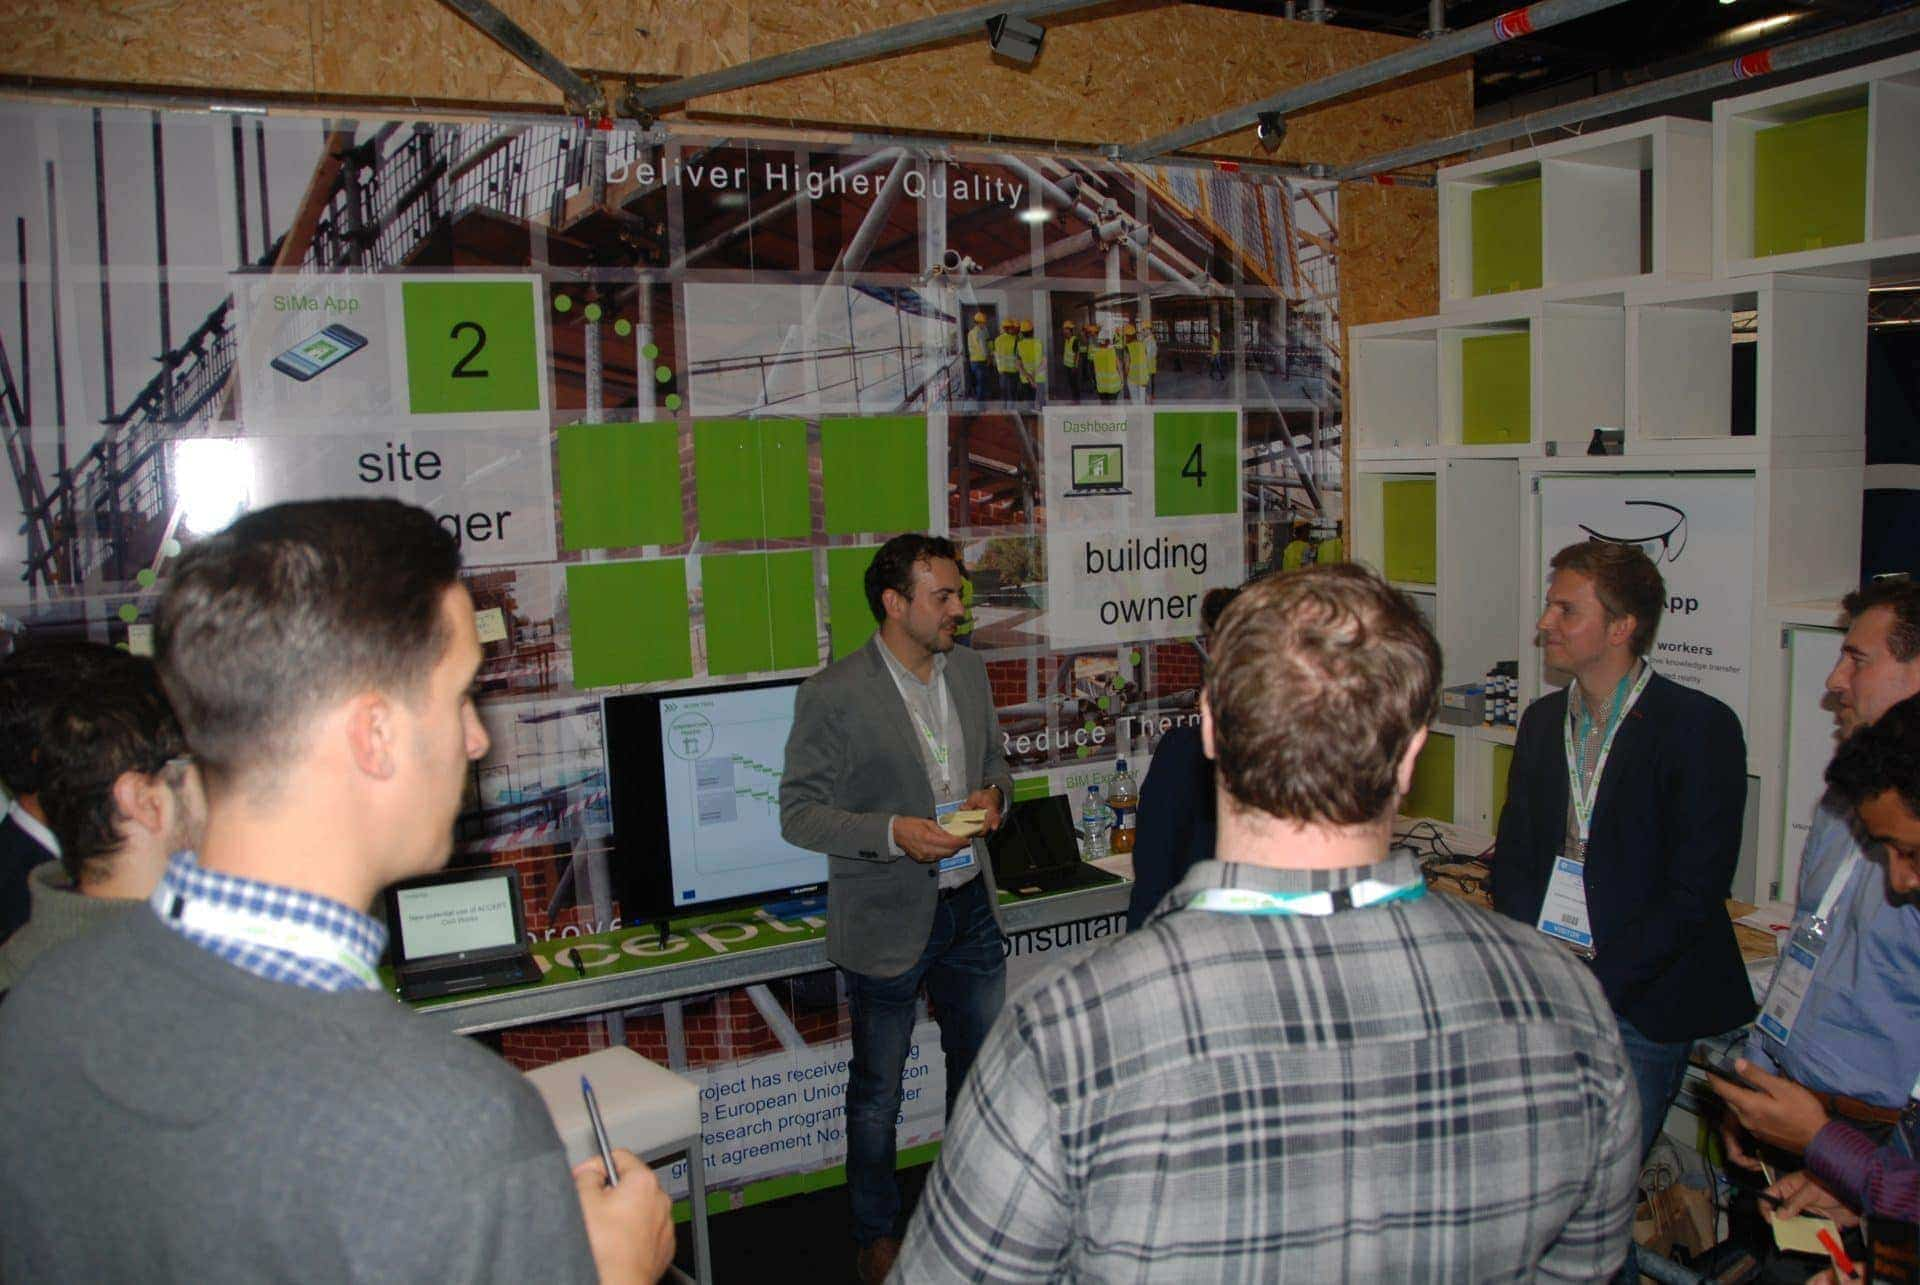 augmented reality in construction at the Digital Construction Week